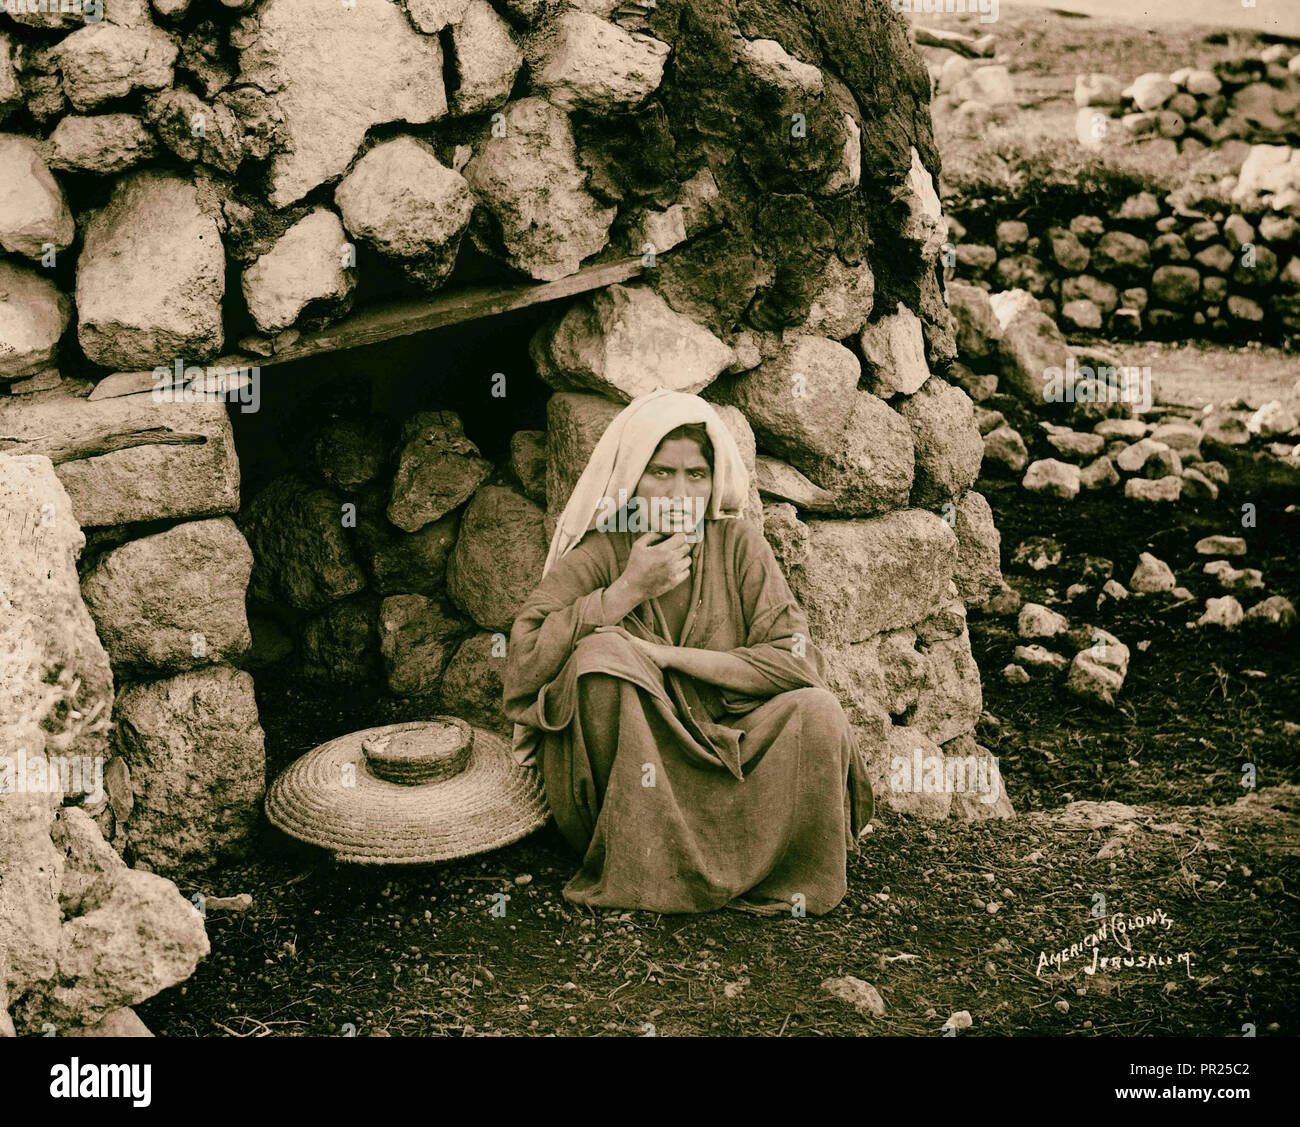 Costumes, characters and ceremonies, Village oven. 1898, Middle East, Israel and/or Palestine - Stock Image